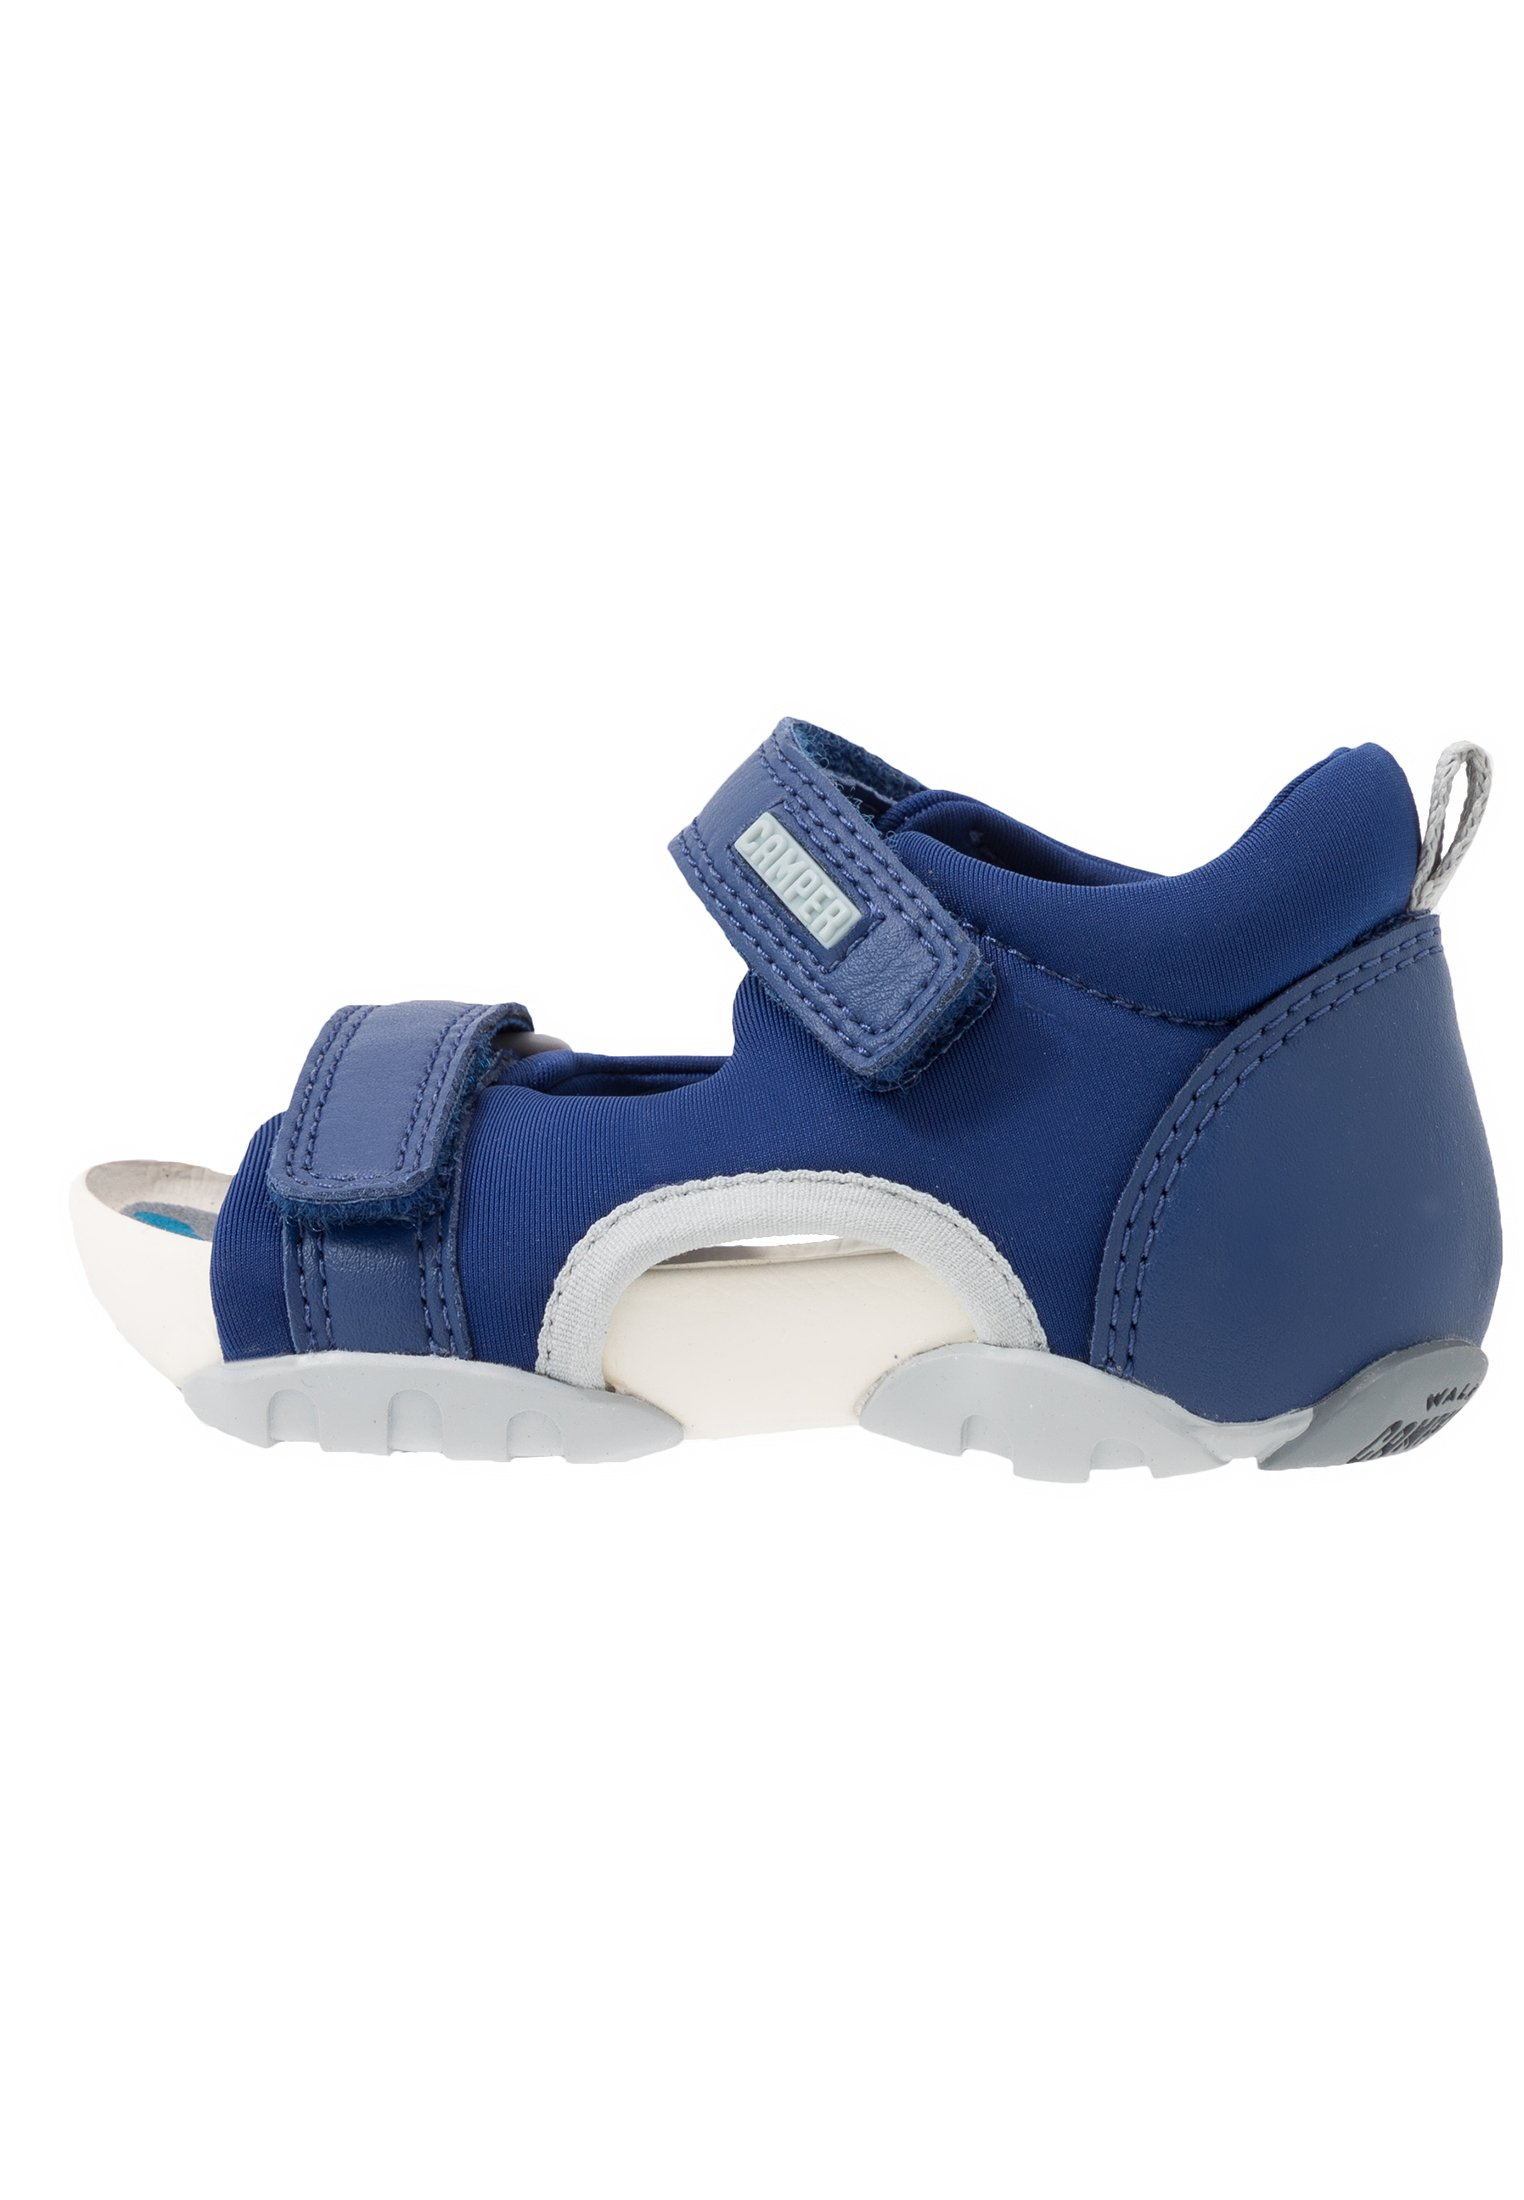 Kids OUS - Baby shoes